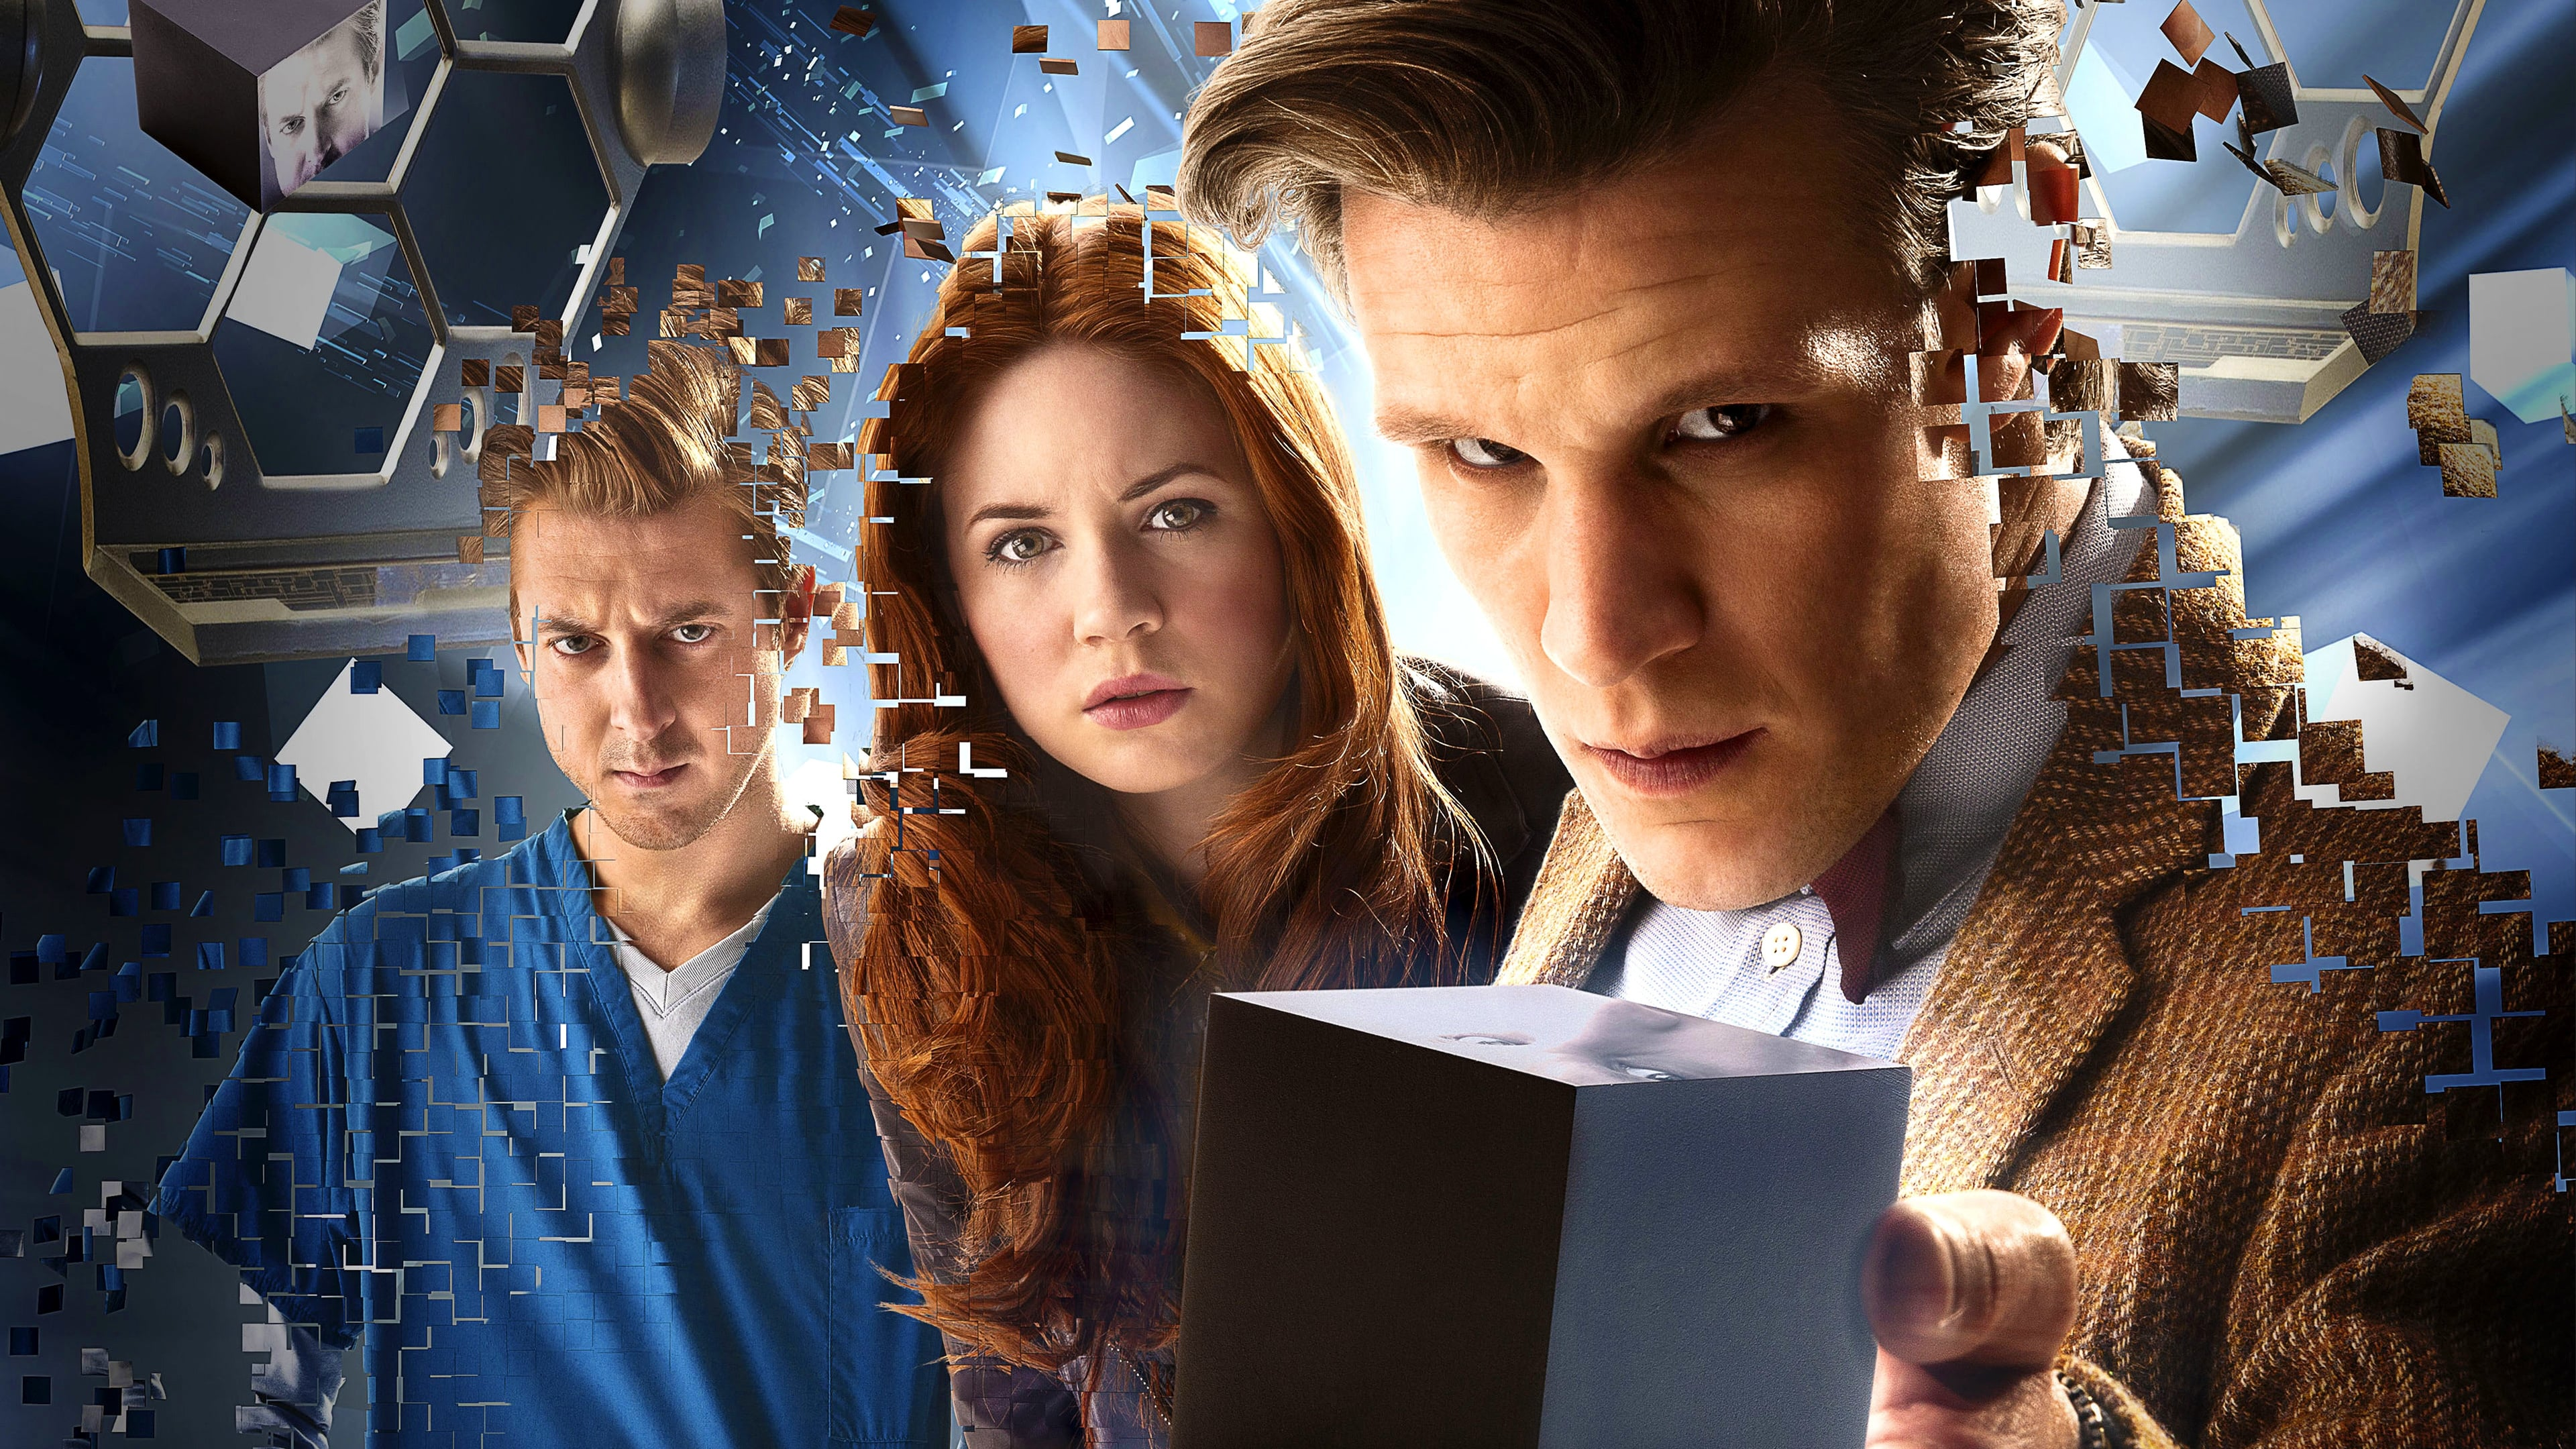 Doctor Who - Season 7 Episode 4 : The Power of Three